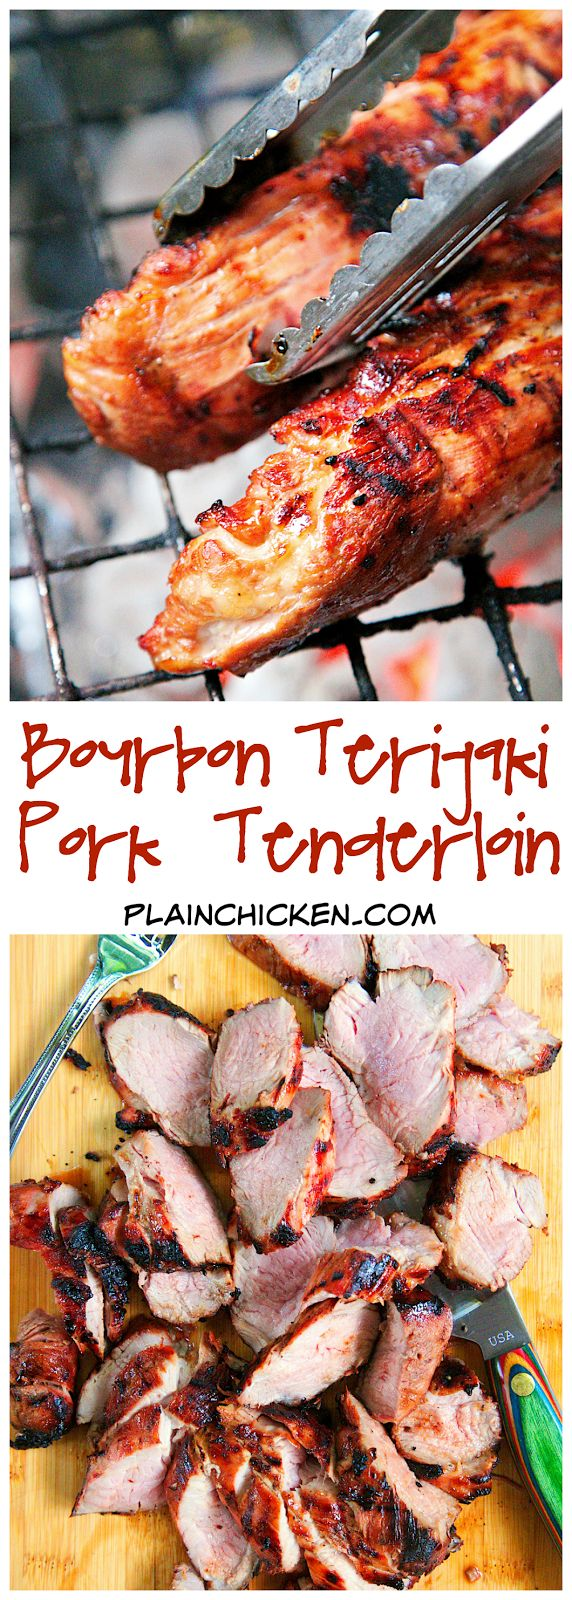 Bourbon Teriyaki Pork Tenderloin Recipe - only 5 ingredients! Teriyaki marinade, bourbon, brown sugar, garlic and pork. SO simple and SO delicious! Can grill or bake pork.